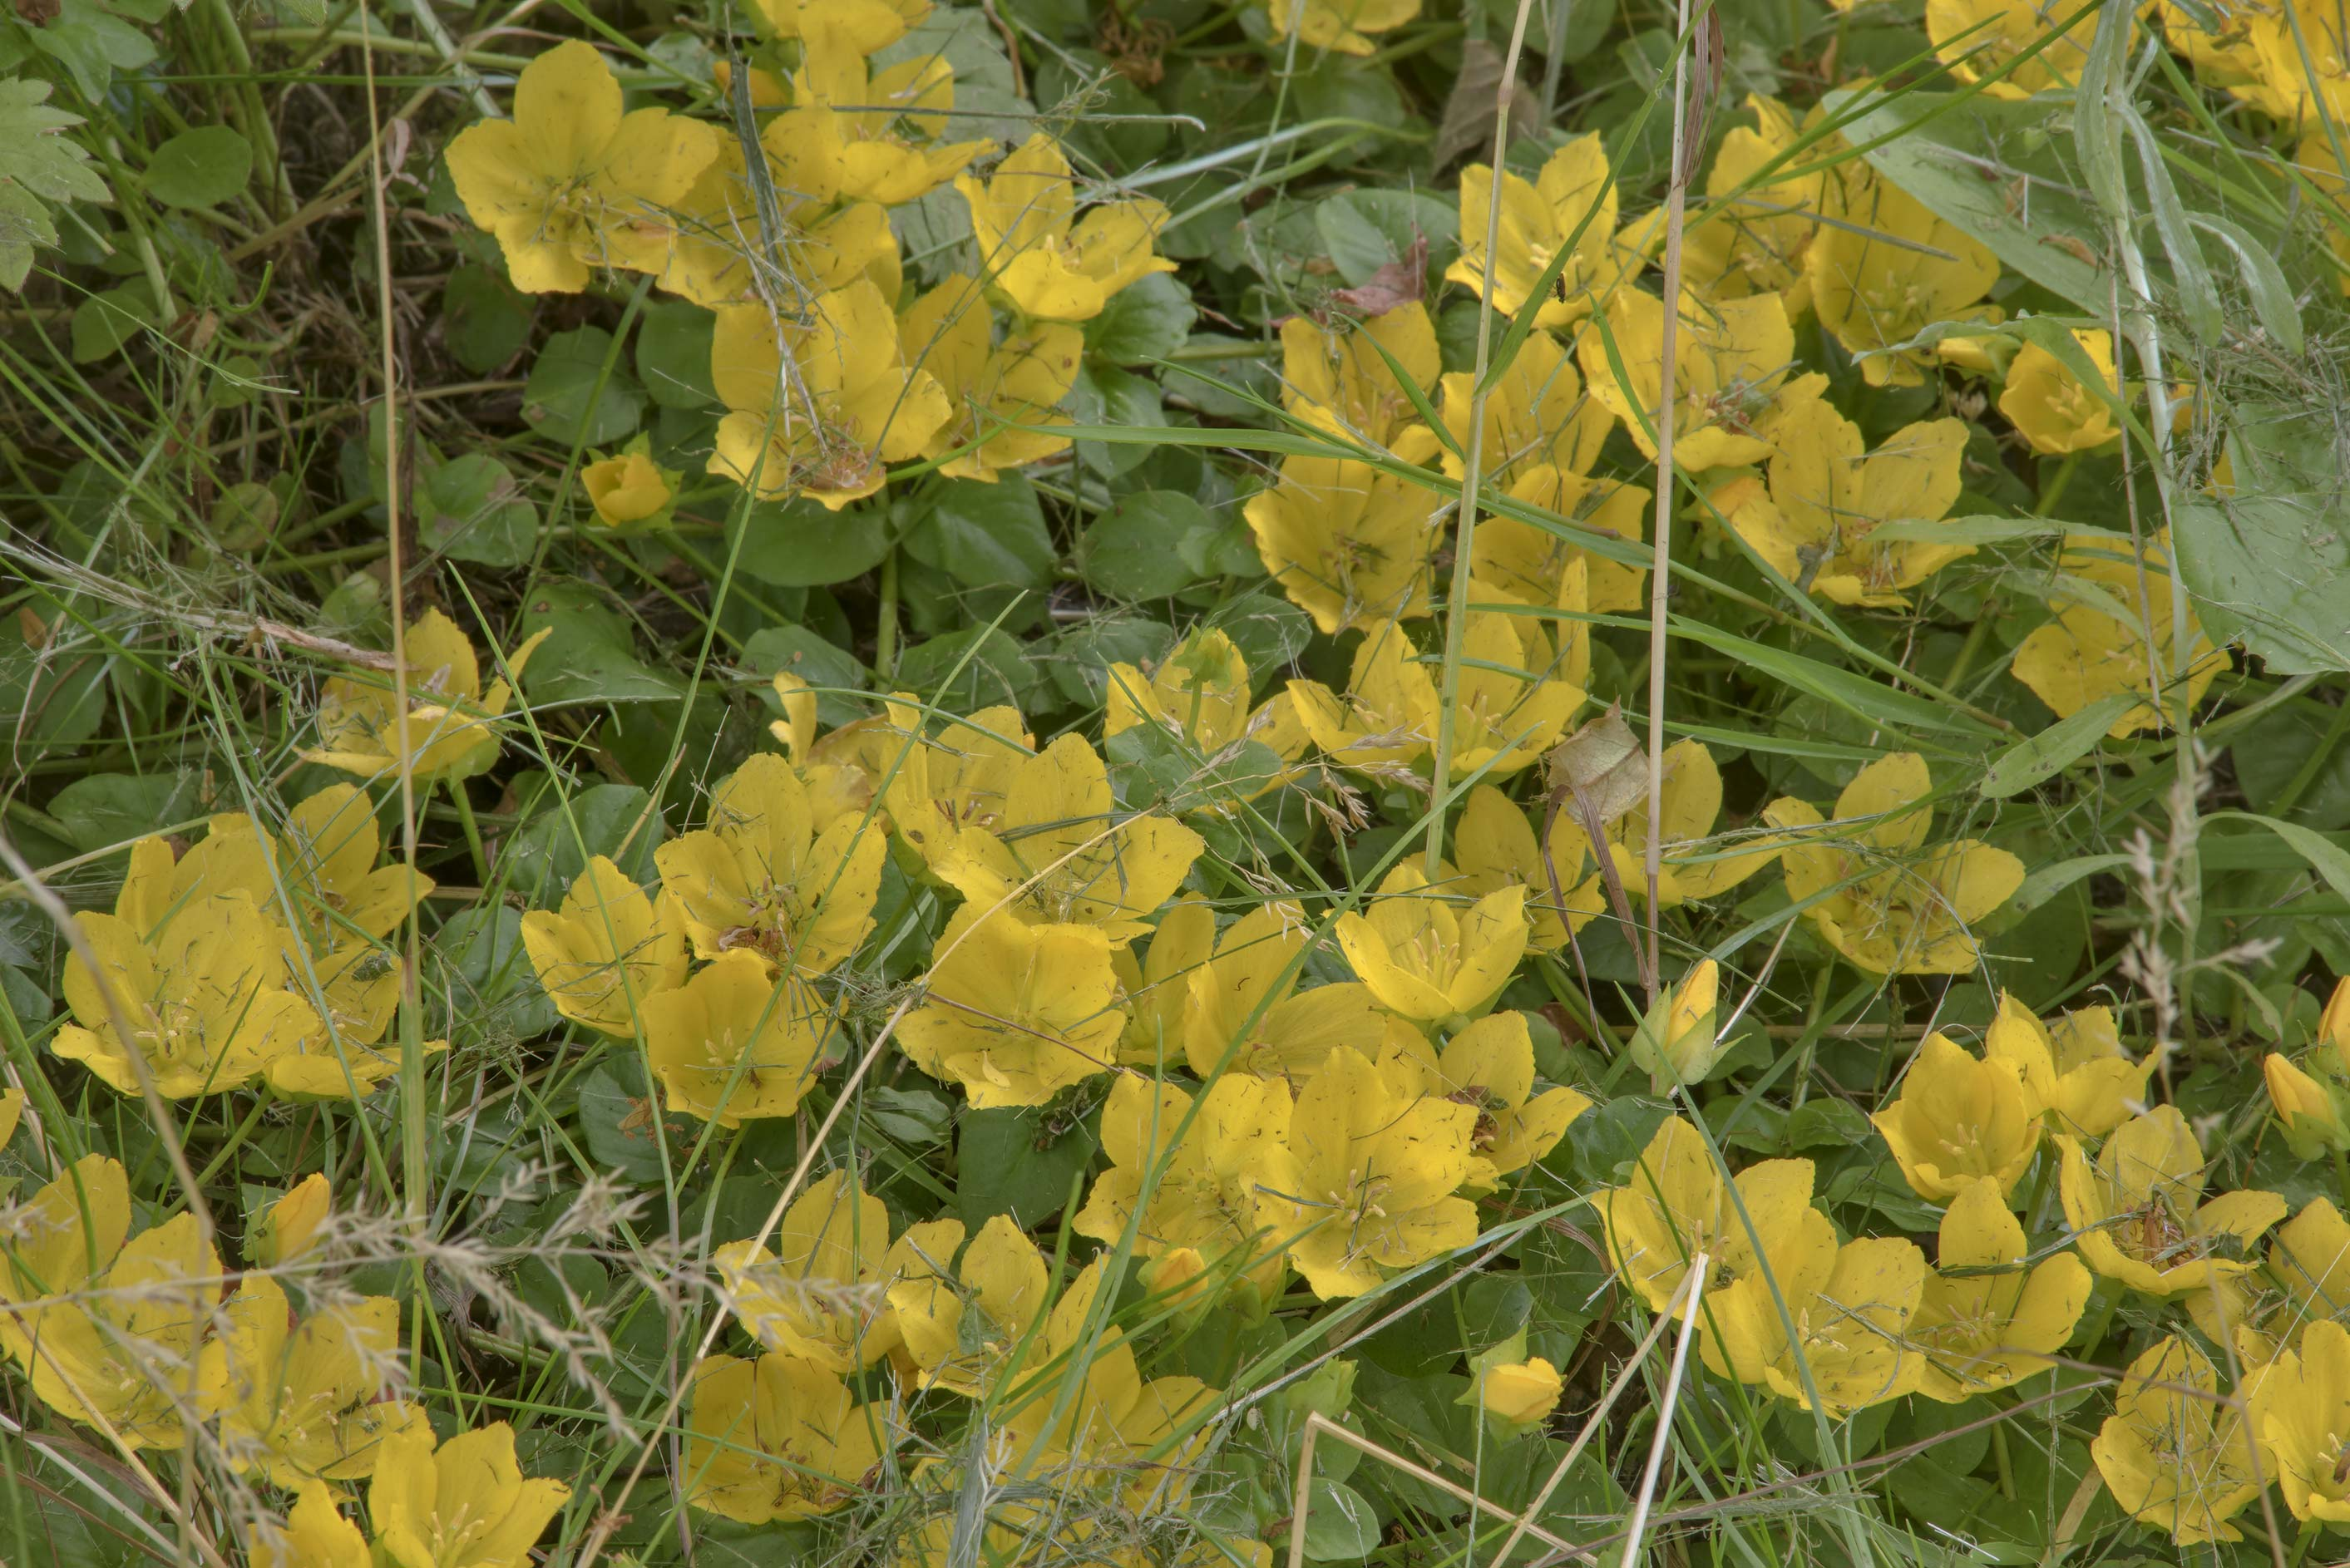 Moneywort (Creeping Jenny, Lysimachia nummularia...Institute. St.Petersburg, Russia